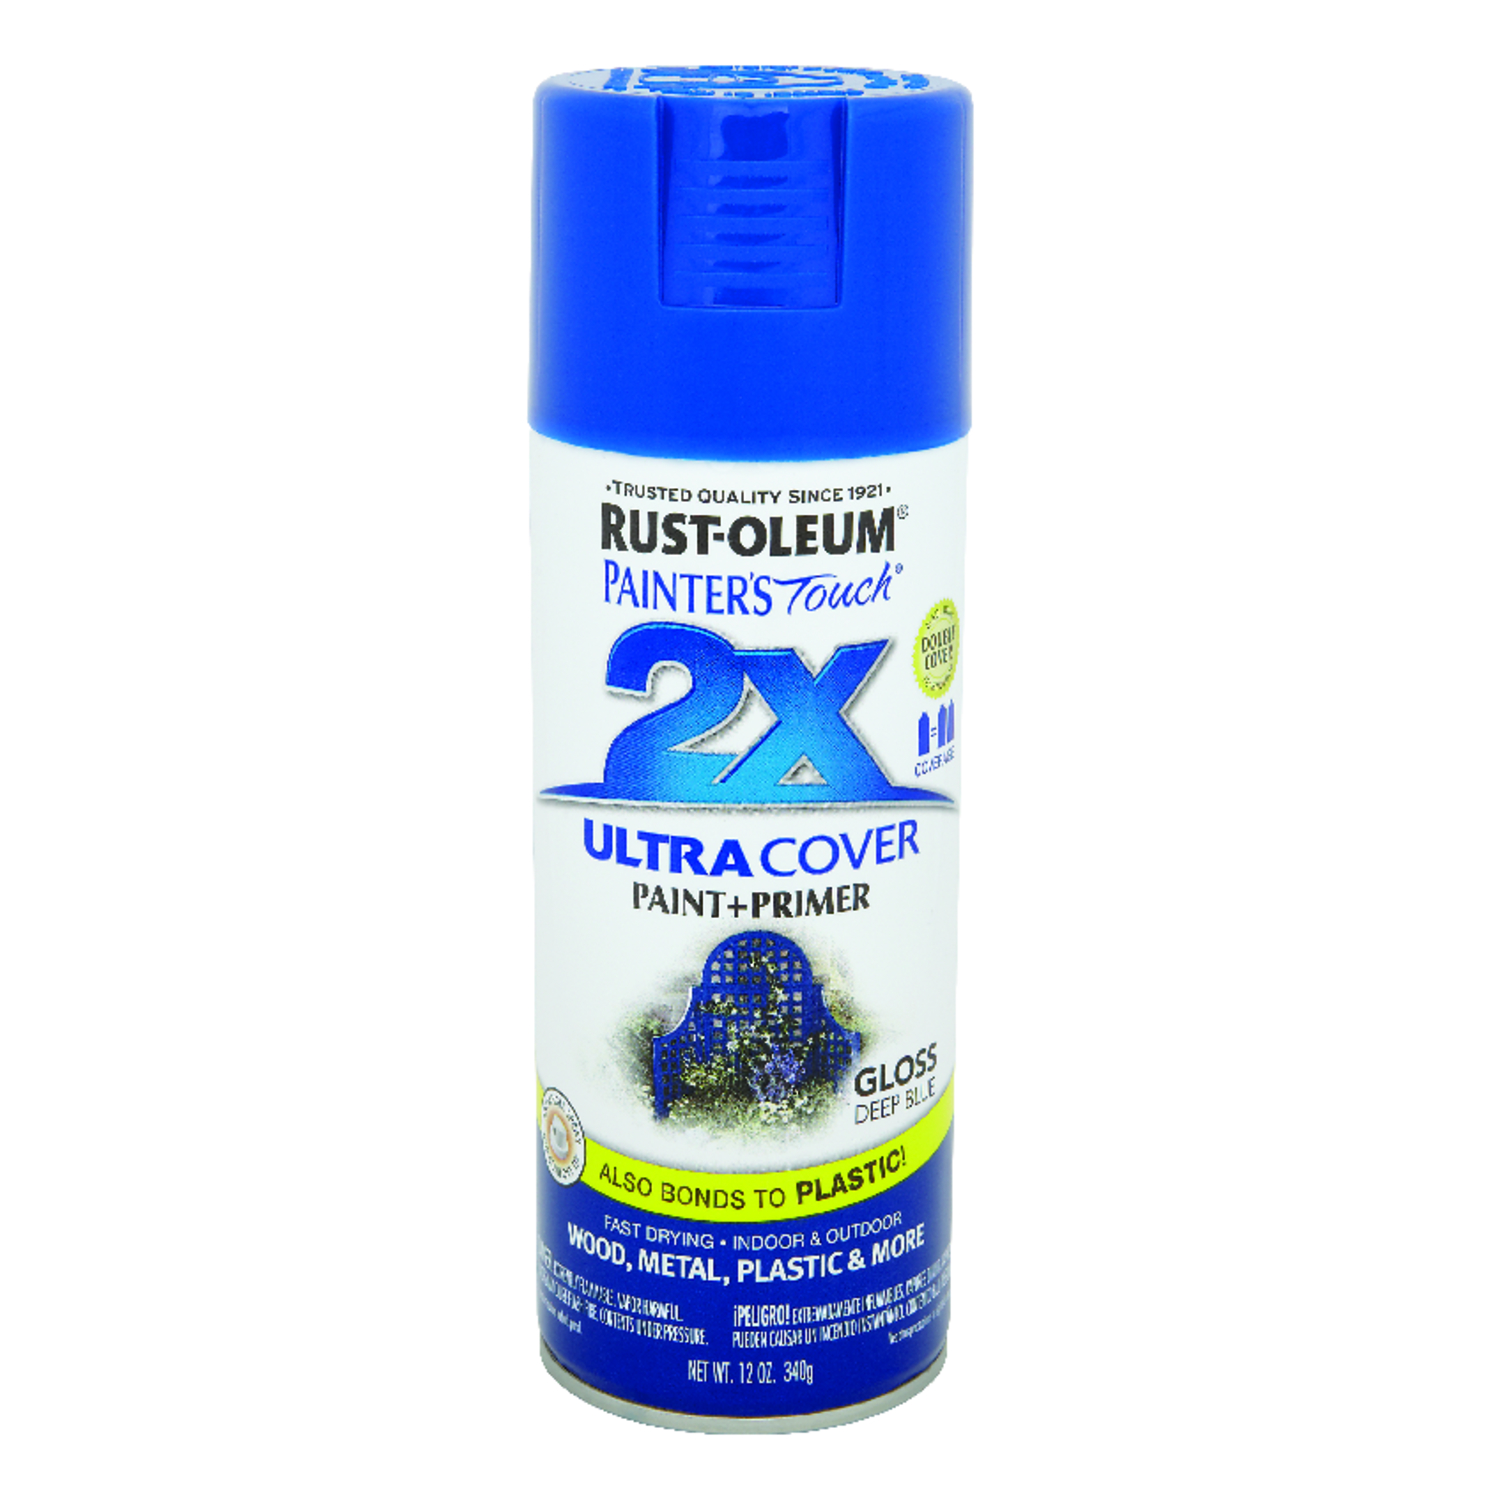 Rust-Oleum  Painter's Touch Ultra Cover  Gloss  Deep Blue  12 oz. Spray Paint